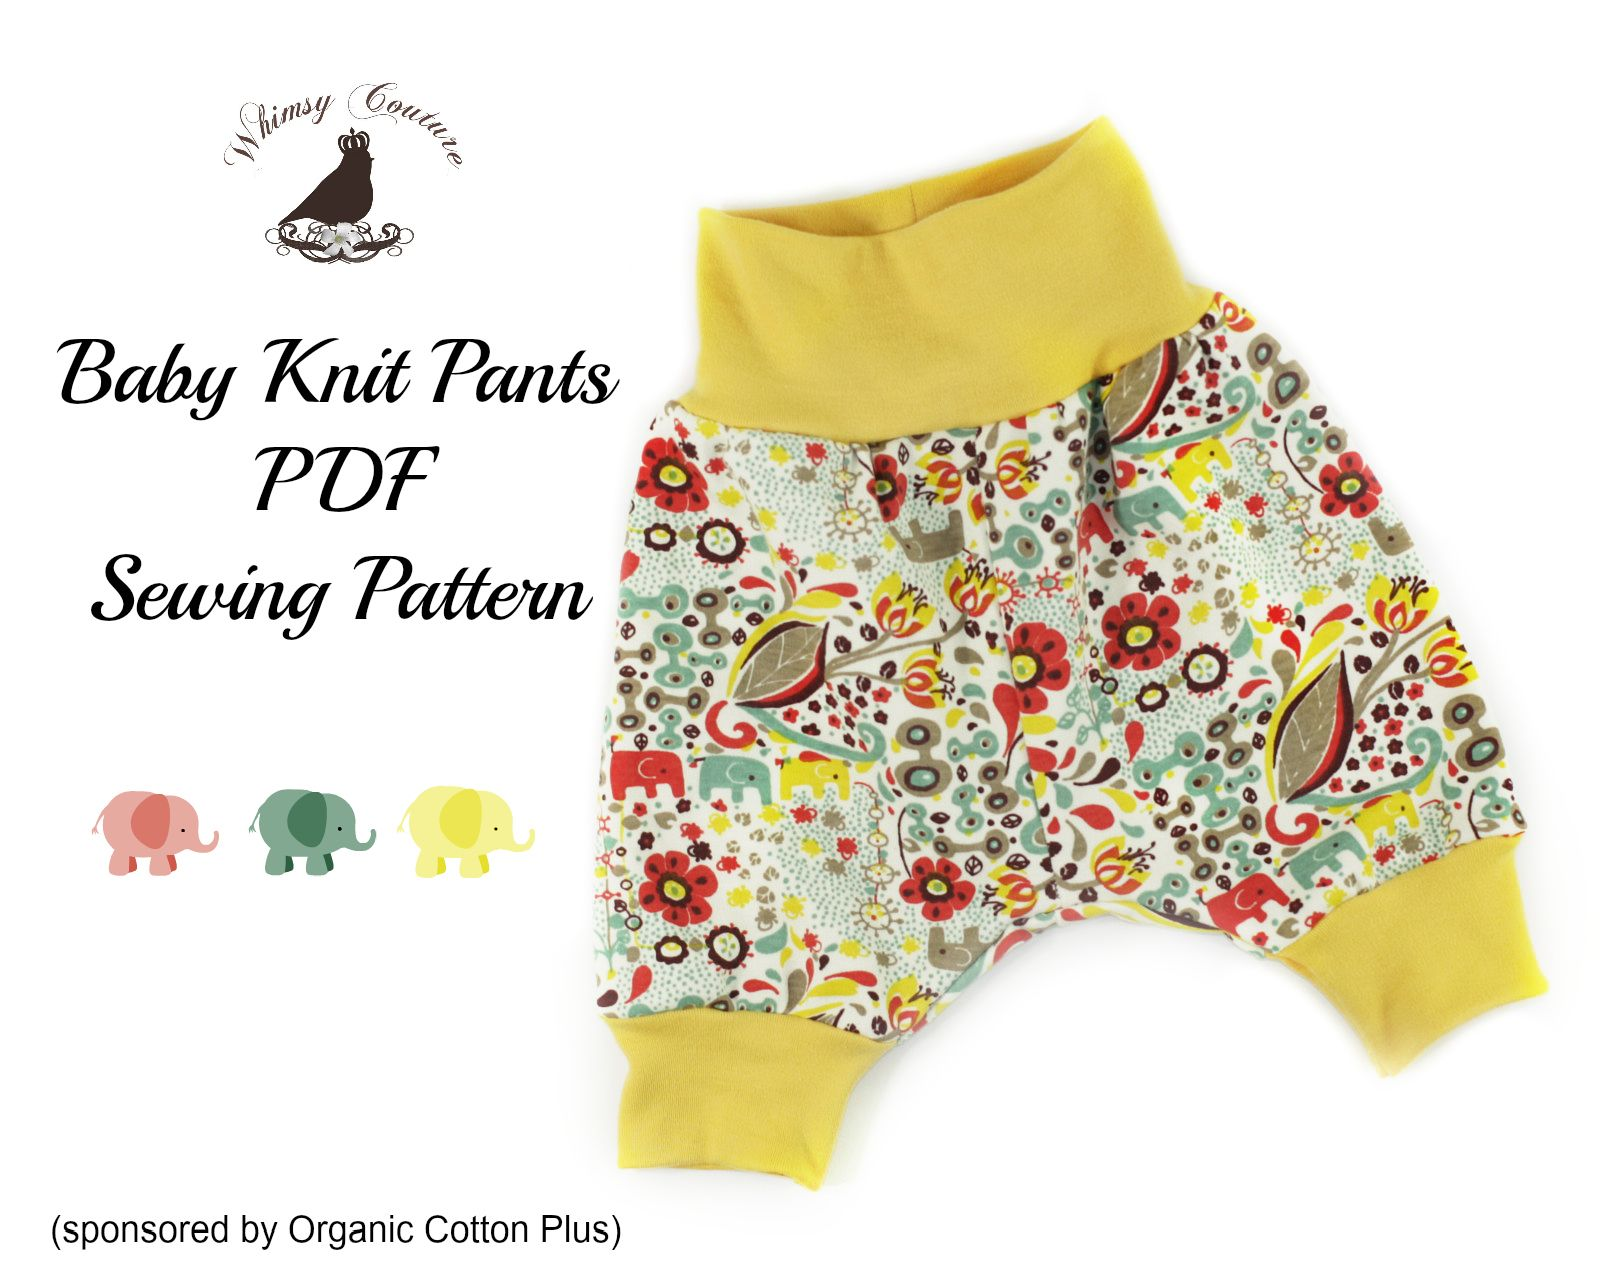 Free pdf sewing pattern for baby knit pants from whimsy couture free pdf sewing pattern for baby knit pants from whimsy couture size newborn jeuxipadfo Gallery